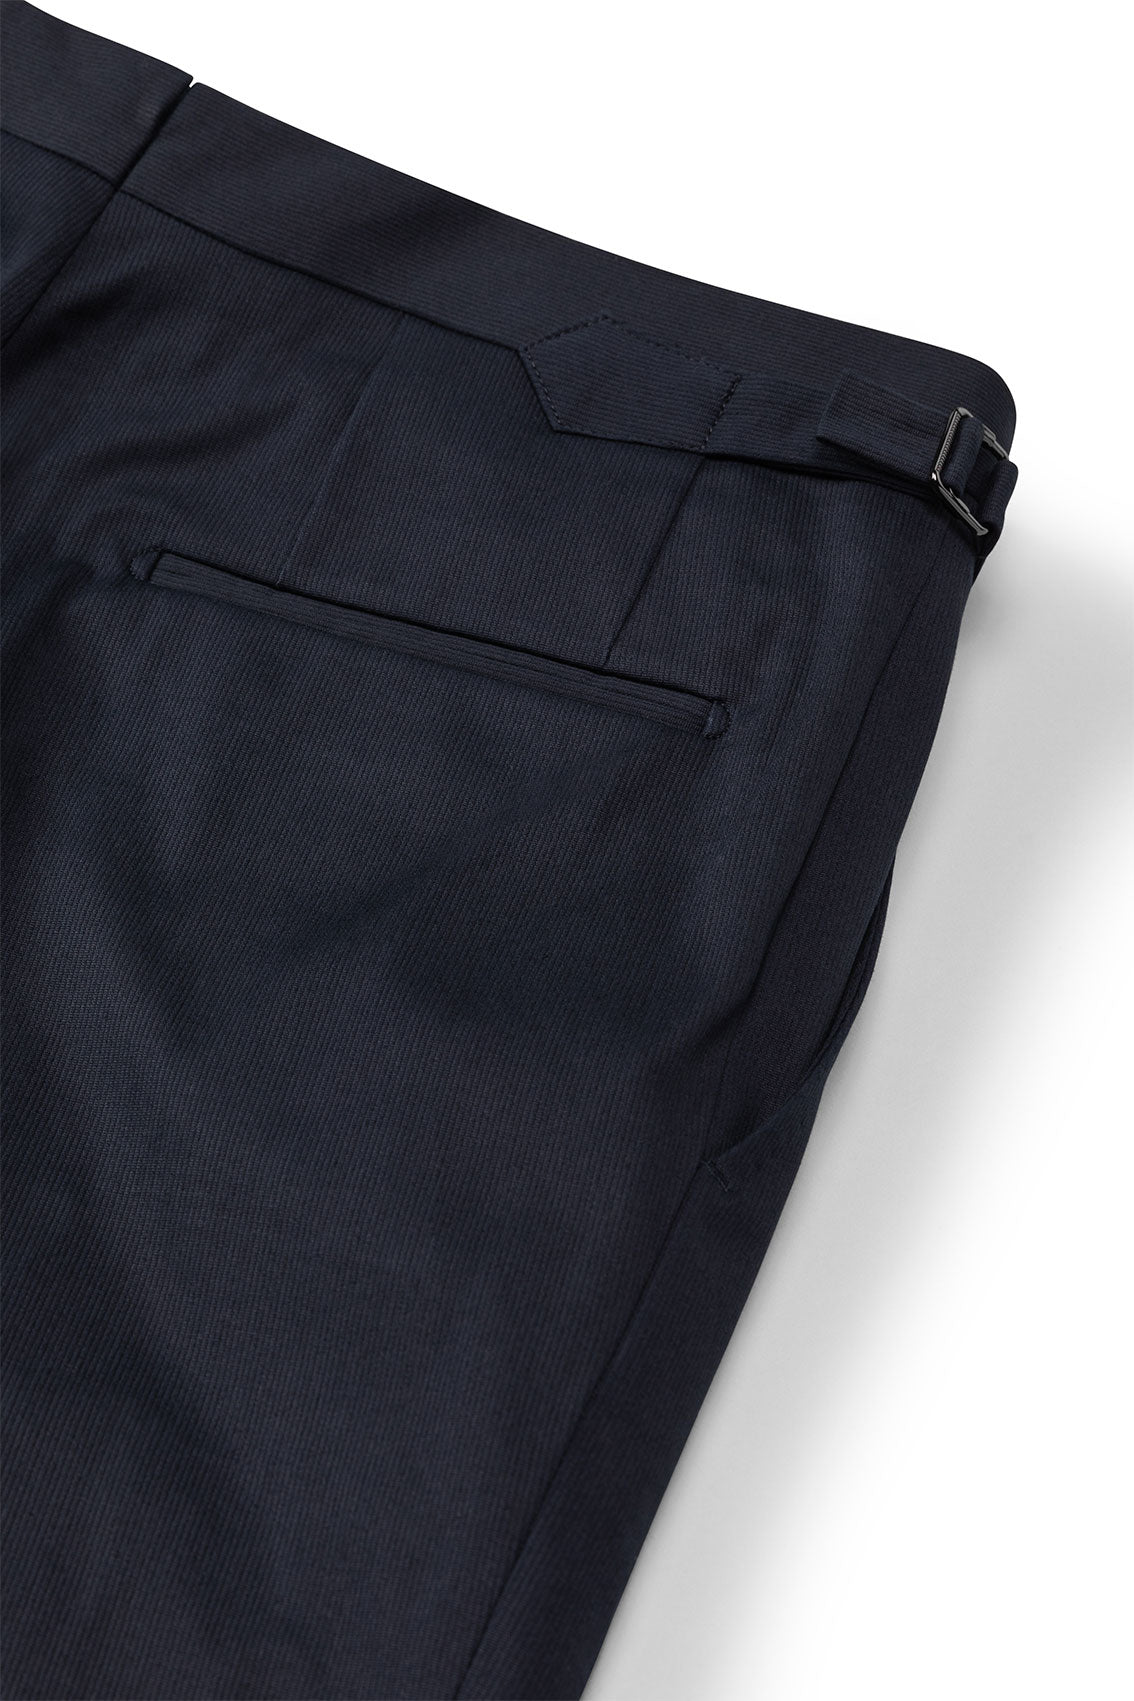 P Johnson Navy Pincord Tailored Trousers